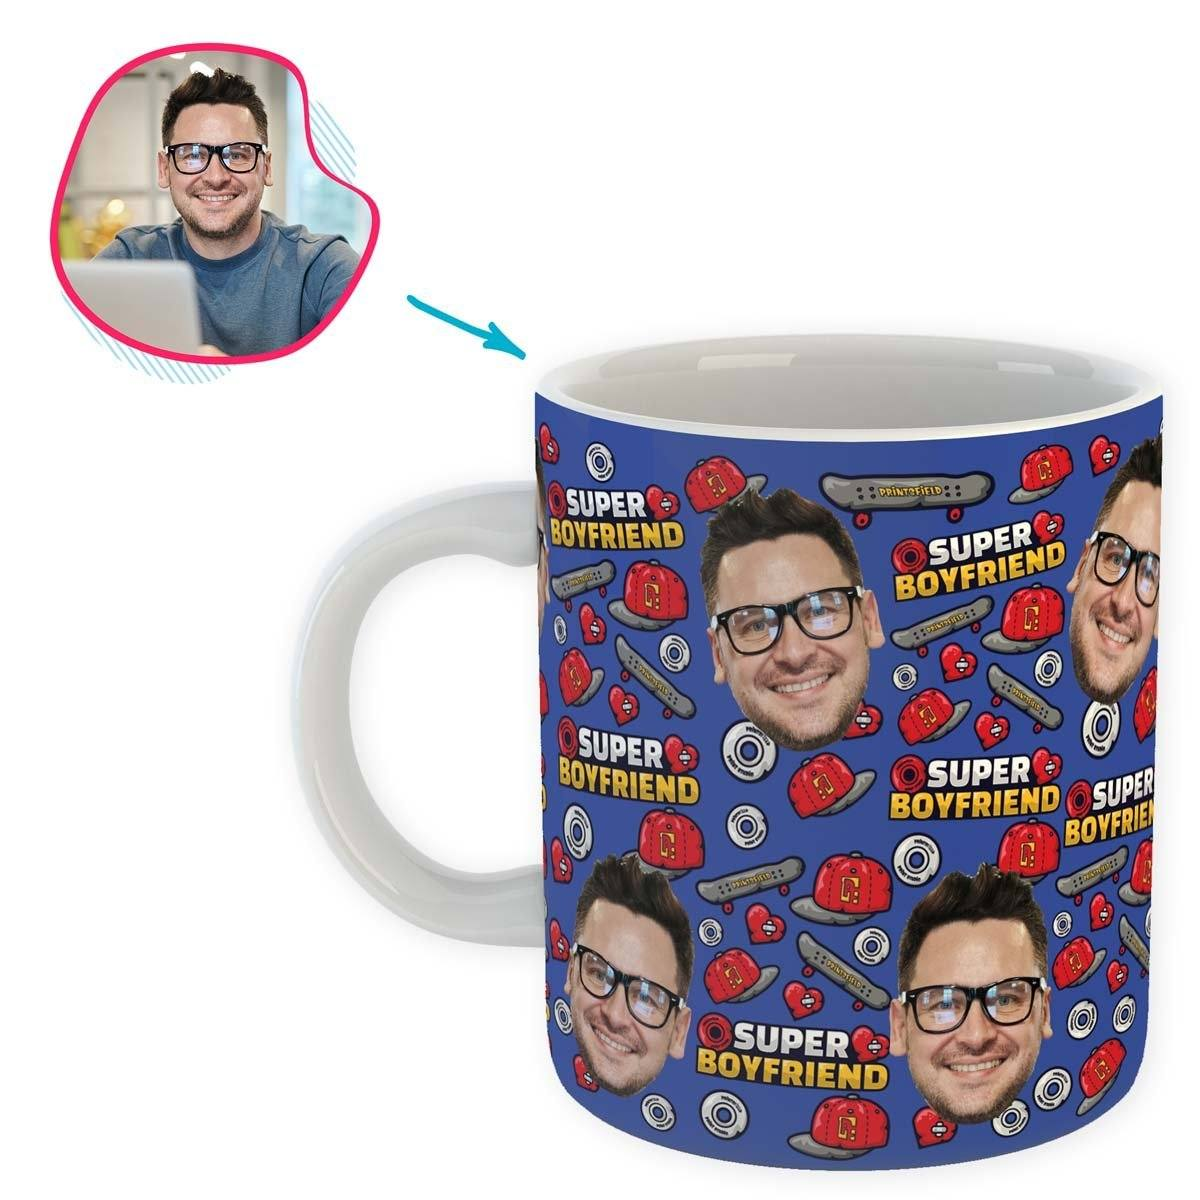 Darkblue Boyfriend personalized mug with photo of face printed on it